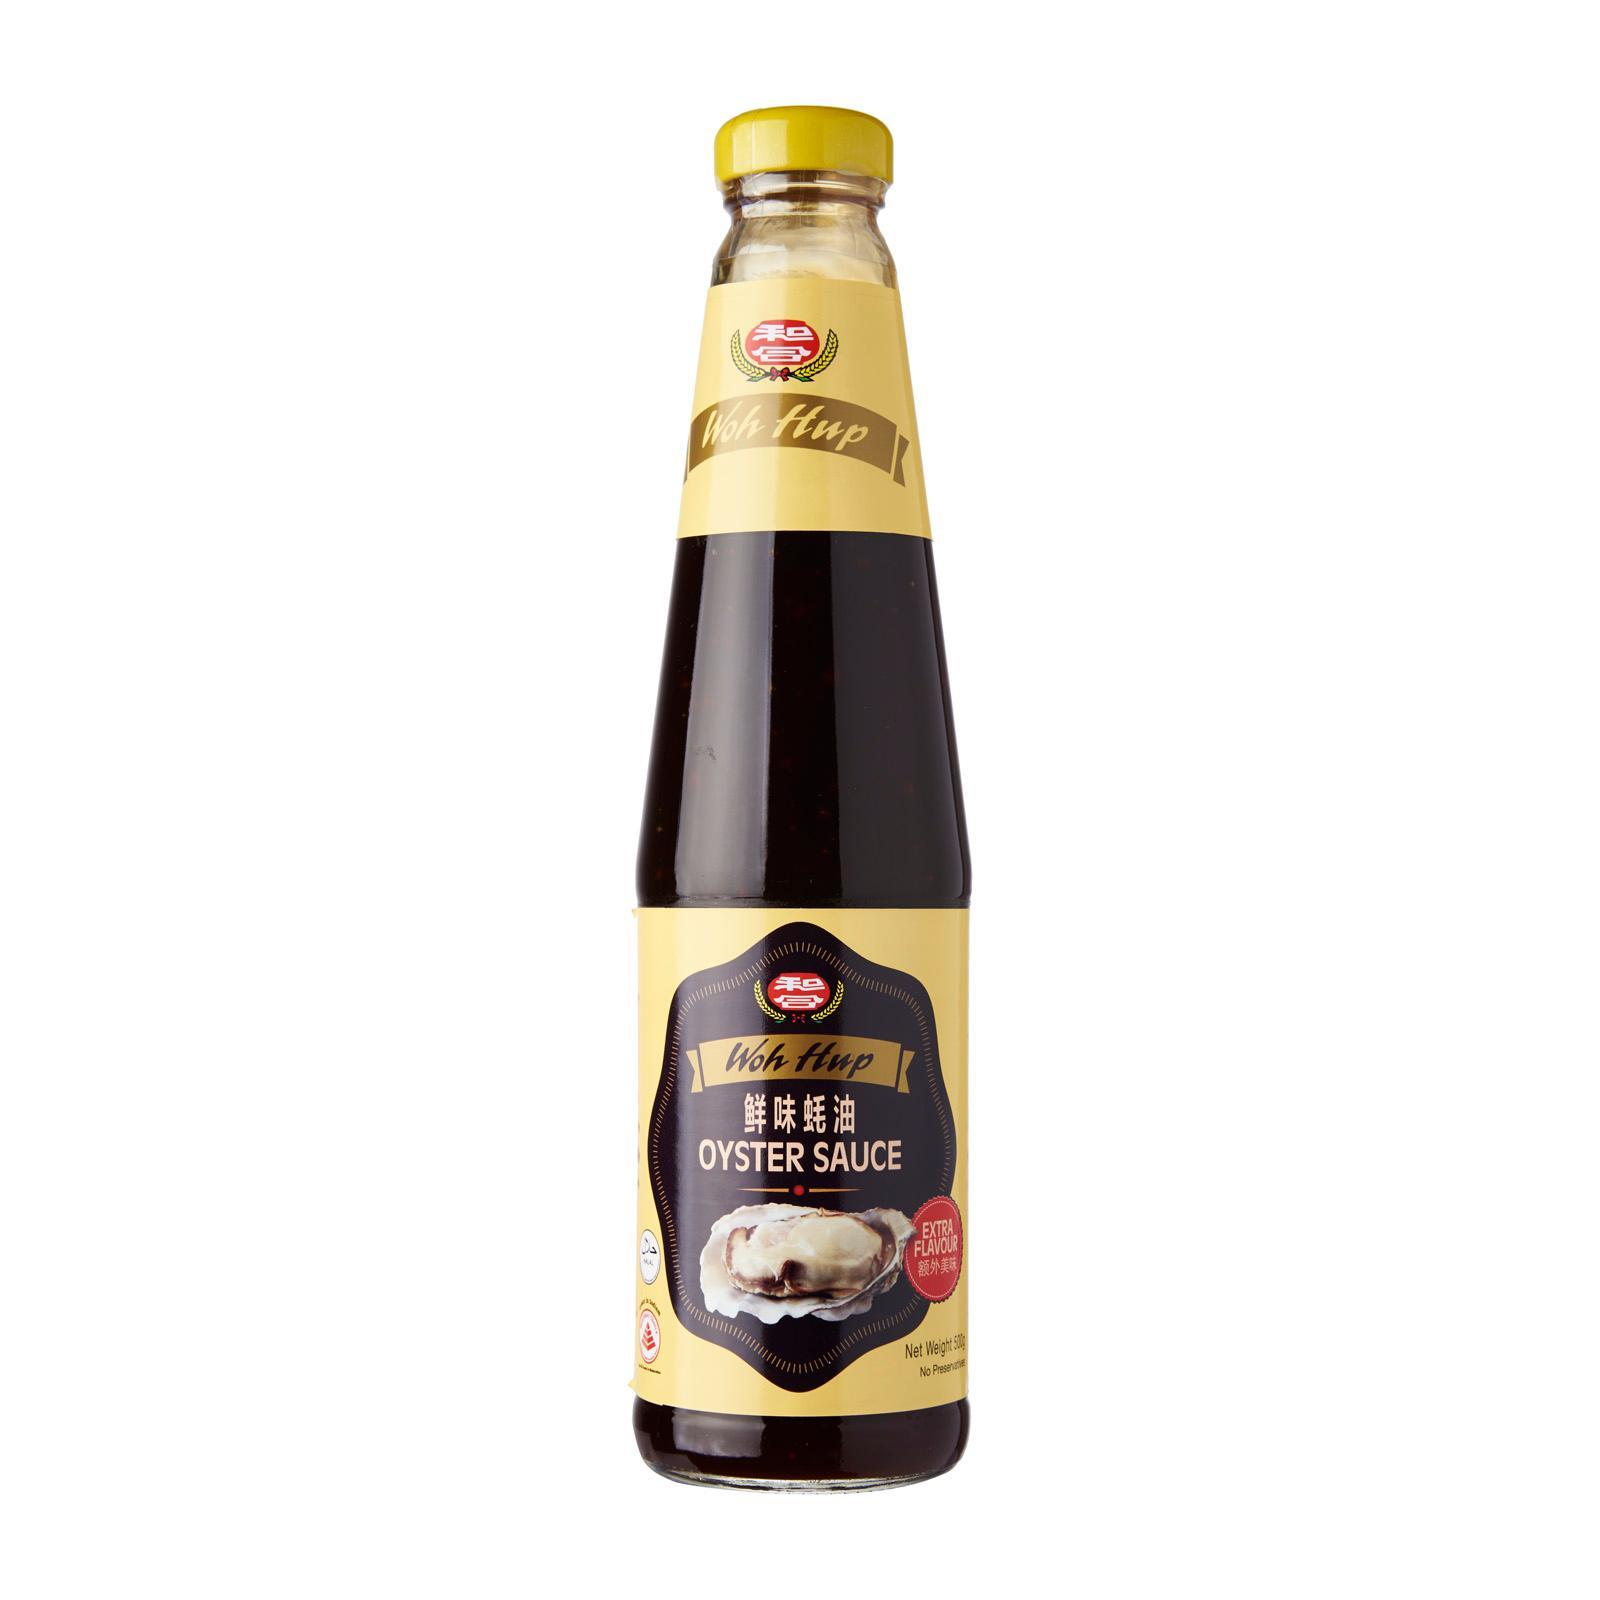 WOH HUP Oyster Sauce Extra Flavour 500g